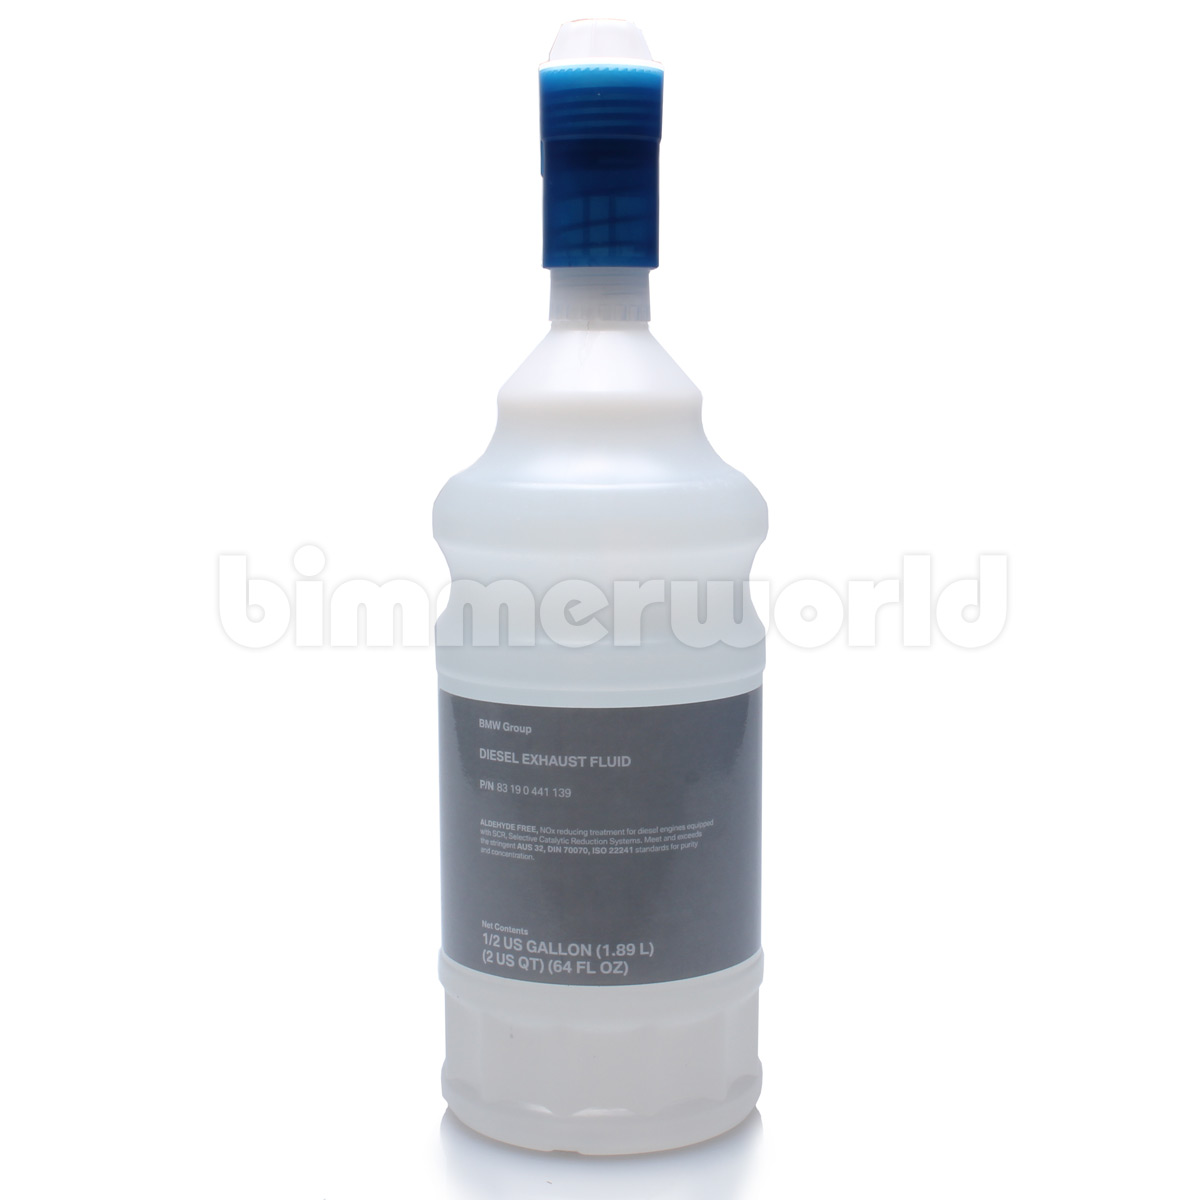 Bmw 335d For Sale >> Genuine BMW Diesel Exhaust Fluid Adblue - Half Gallon Bottle - 83190441139